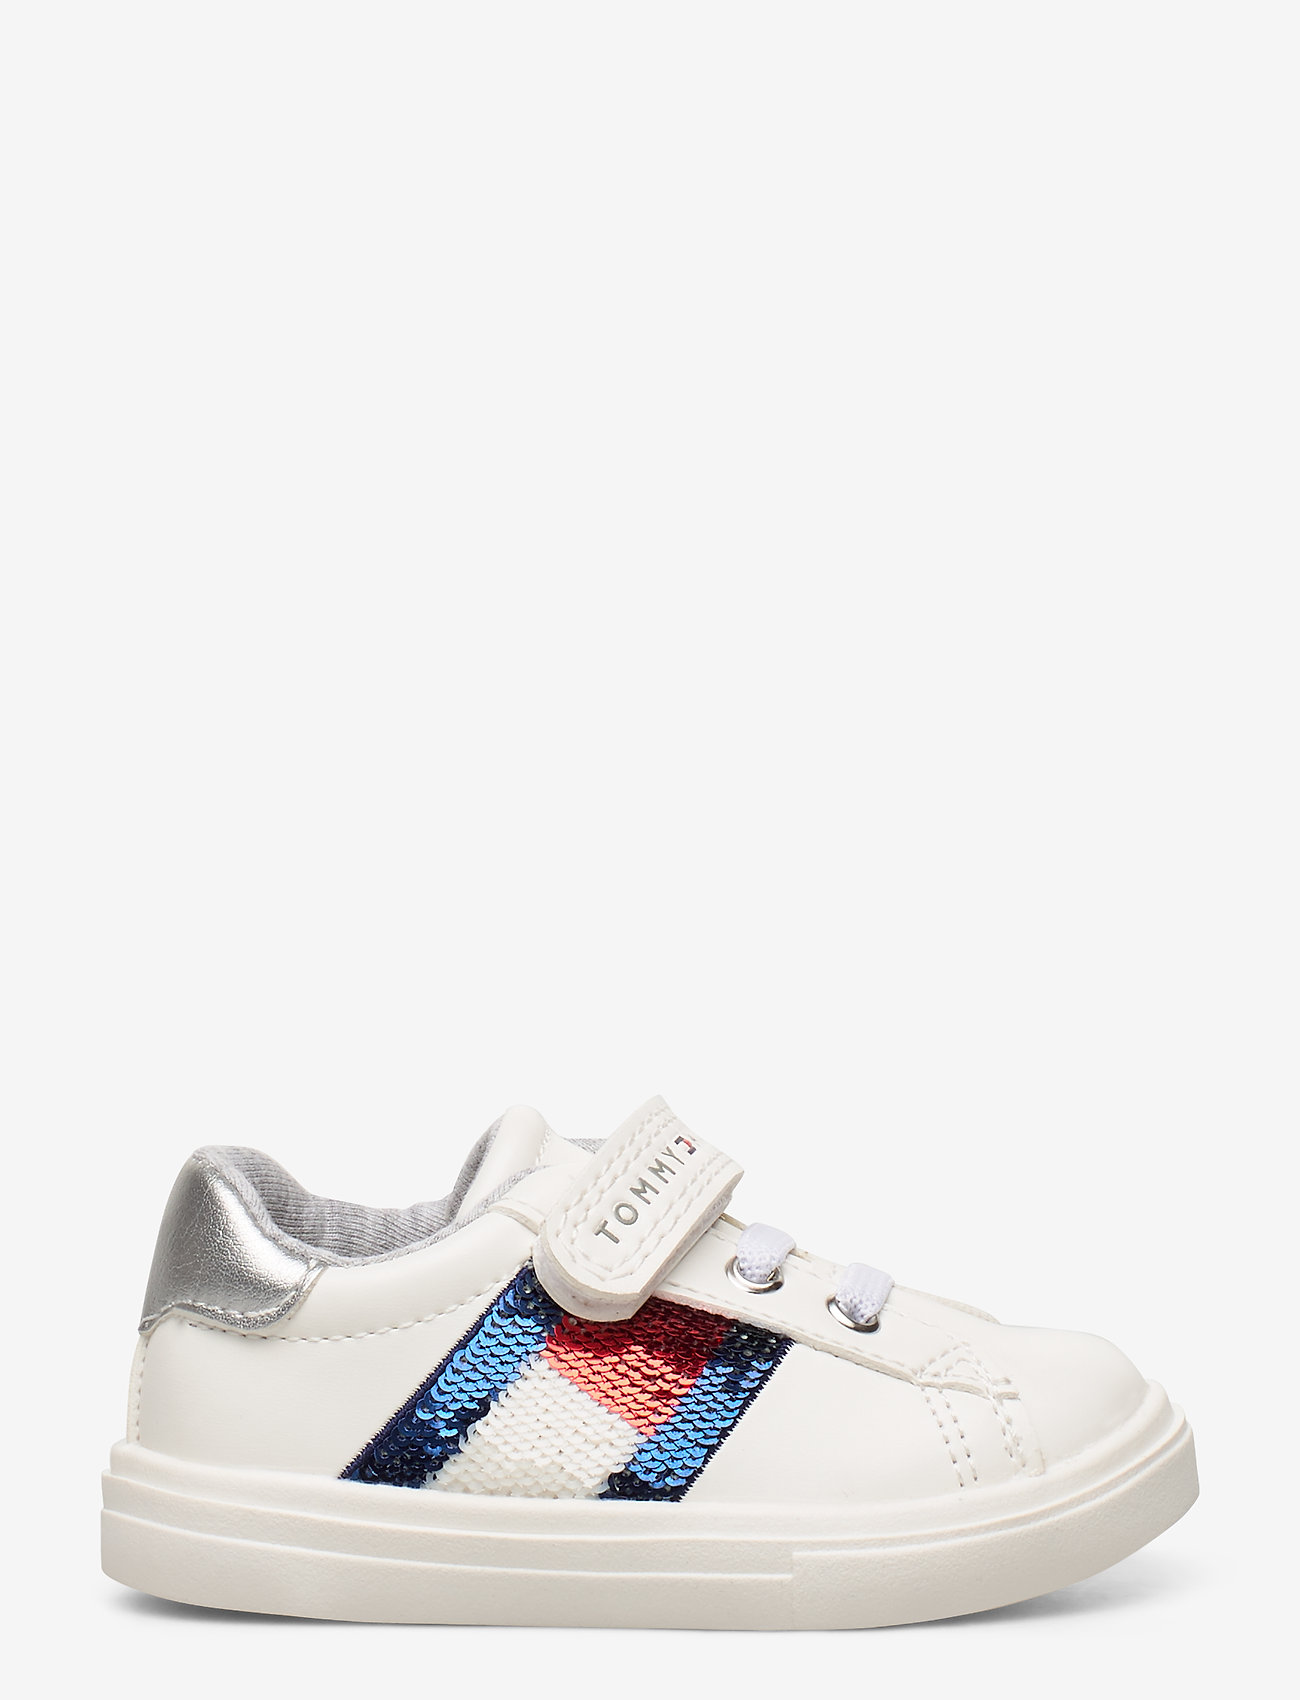 Tommy Hilfiger Low Cut Lace-up/velcro Sneaker - Sneakers Bianco